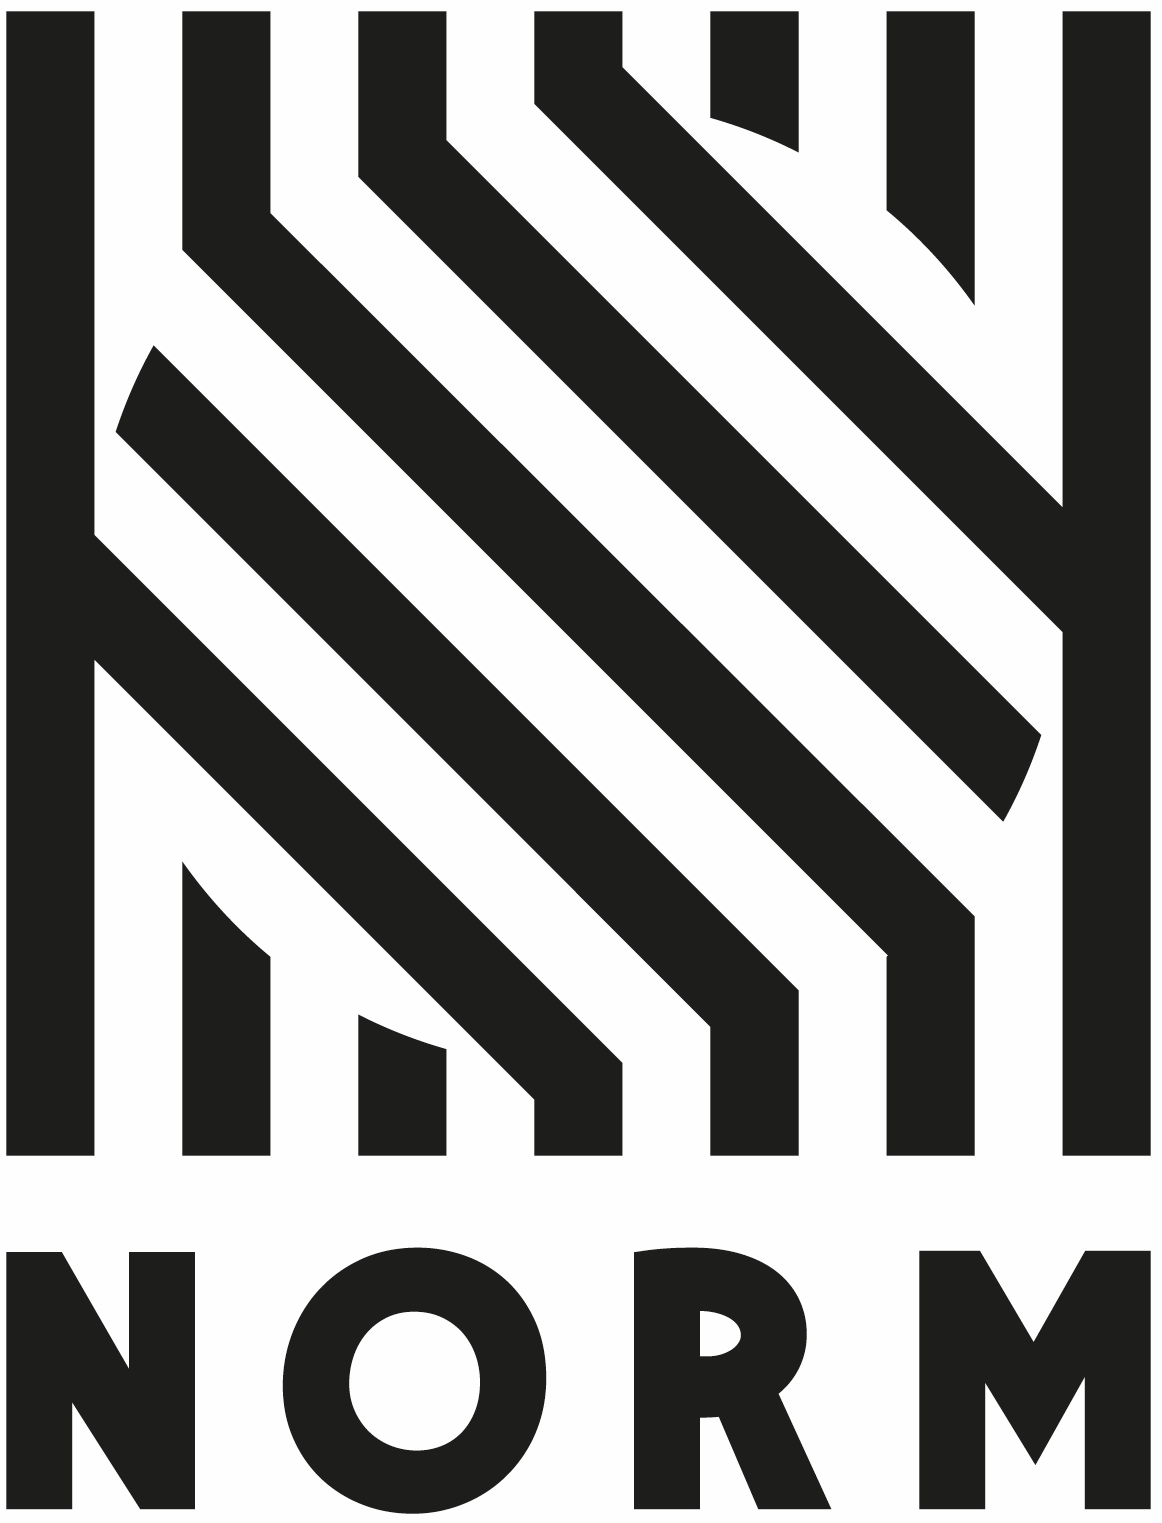 Norm - The sustainable shoe brand